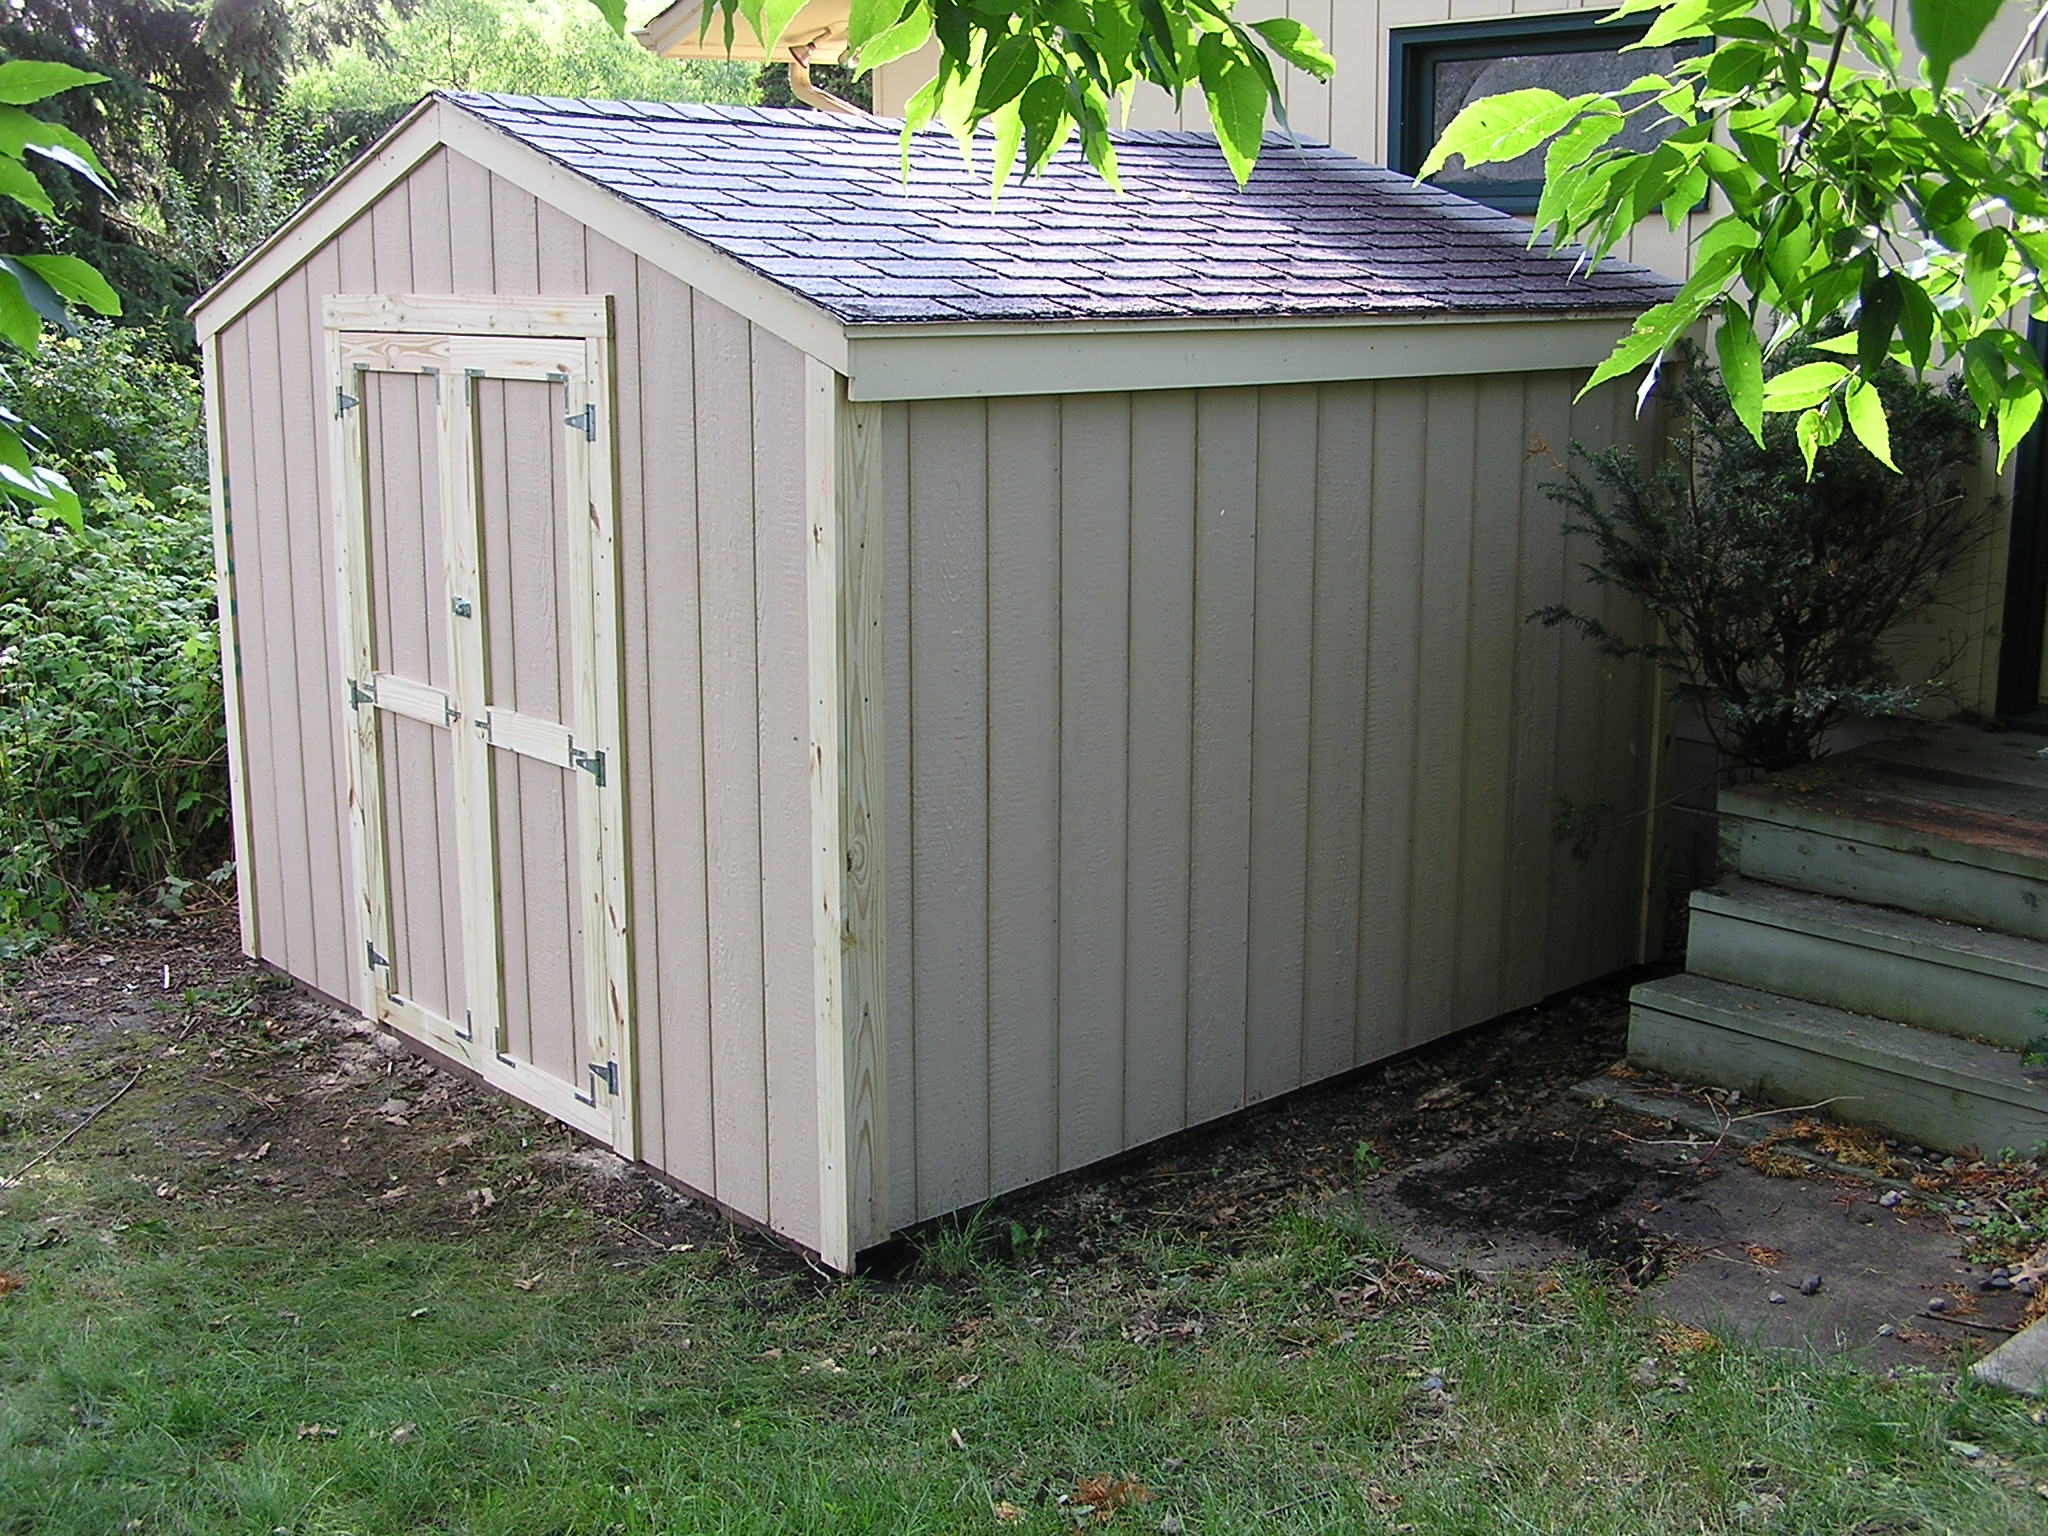 SUN\s\shed